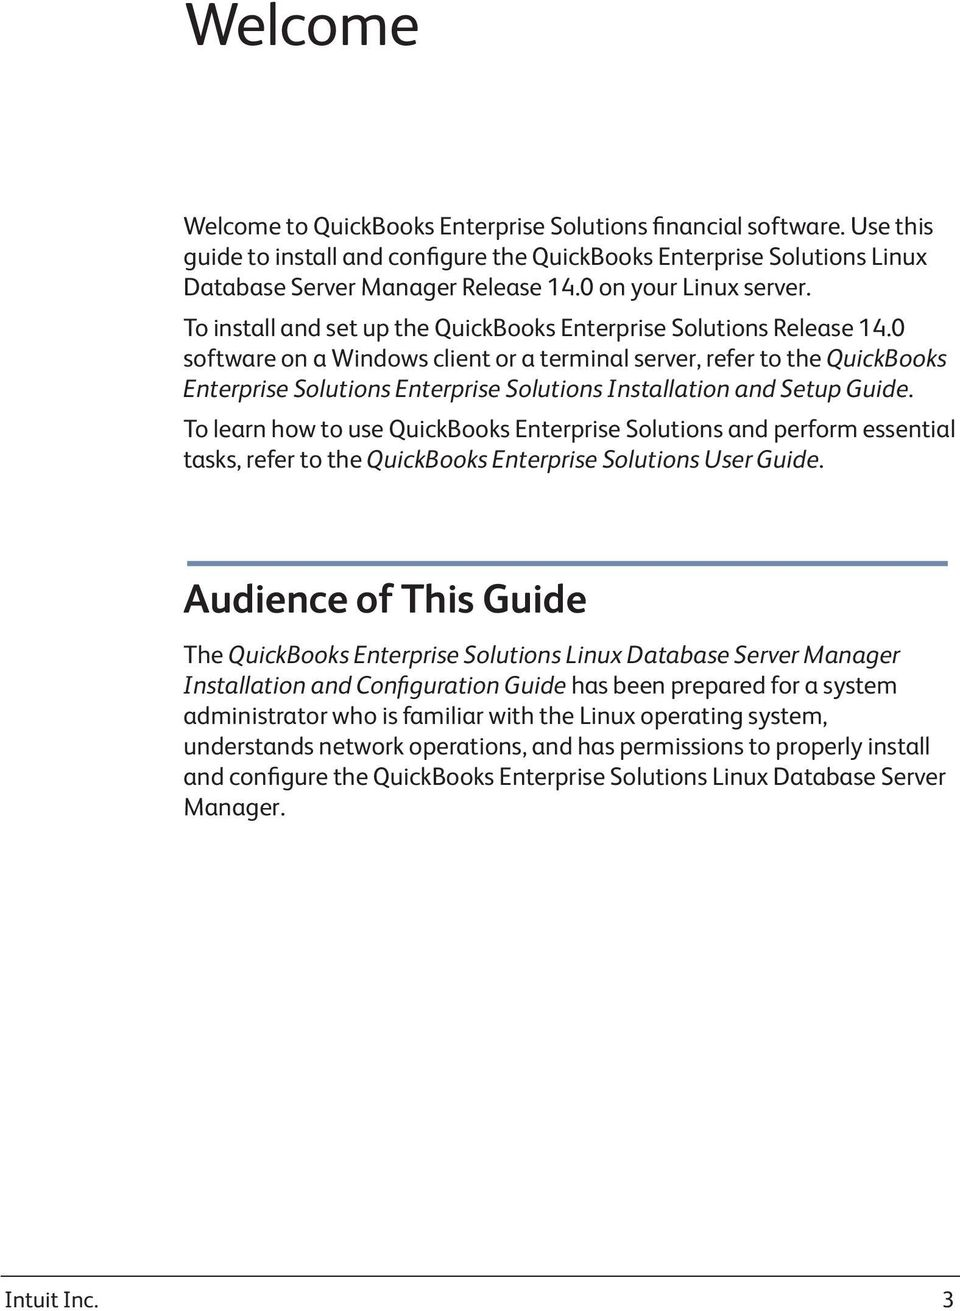 0 software on a Windows client or a terminal server, refer to the QuickBooks Enterprise Solutions Enterprise Solutions Installation and Setup Guide.